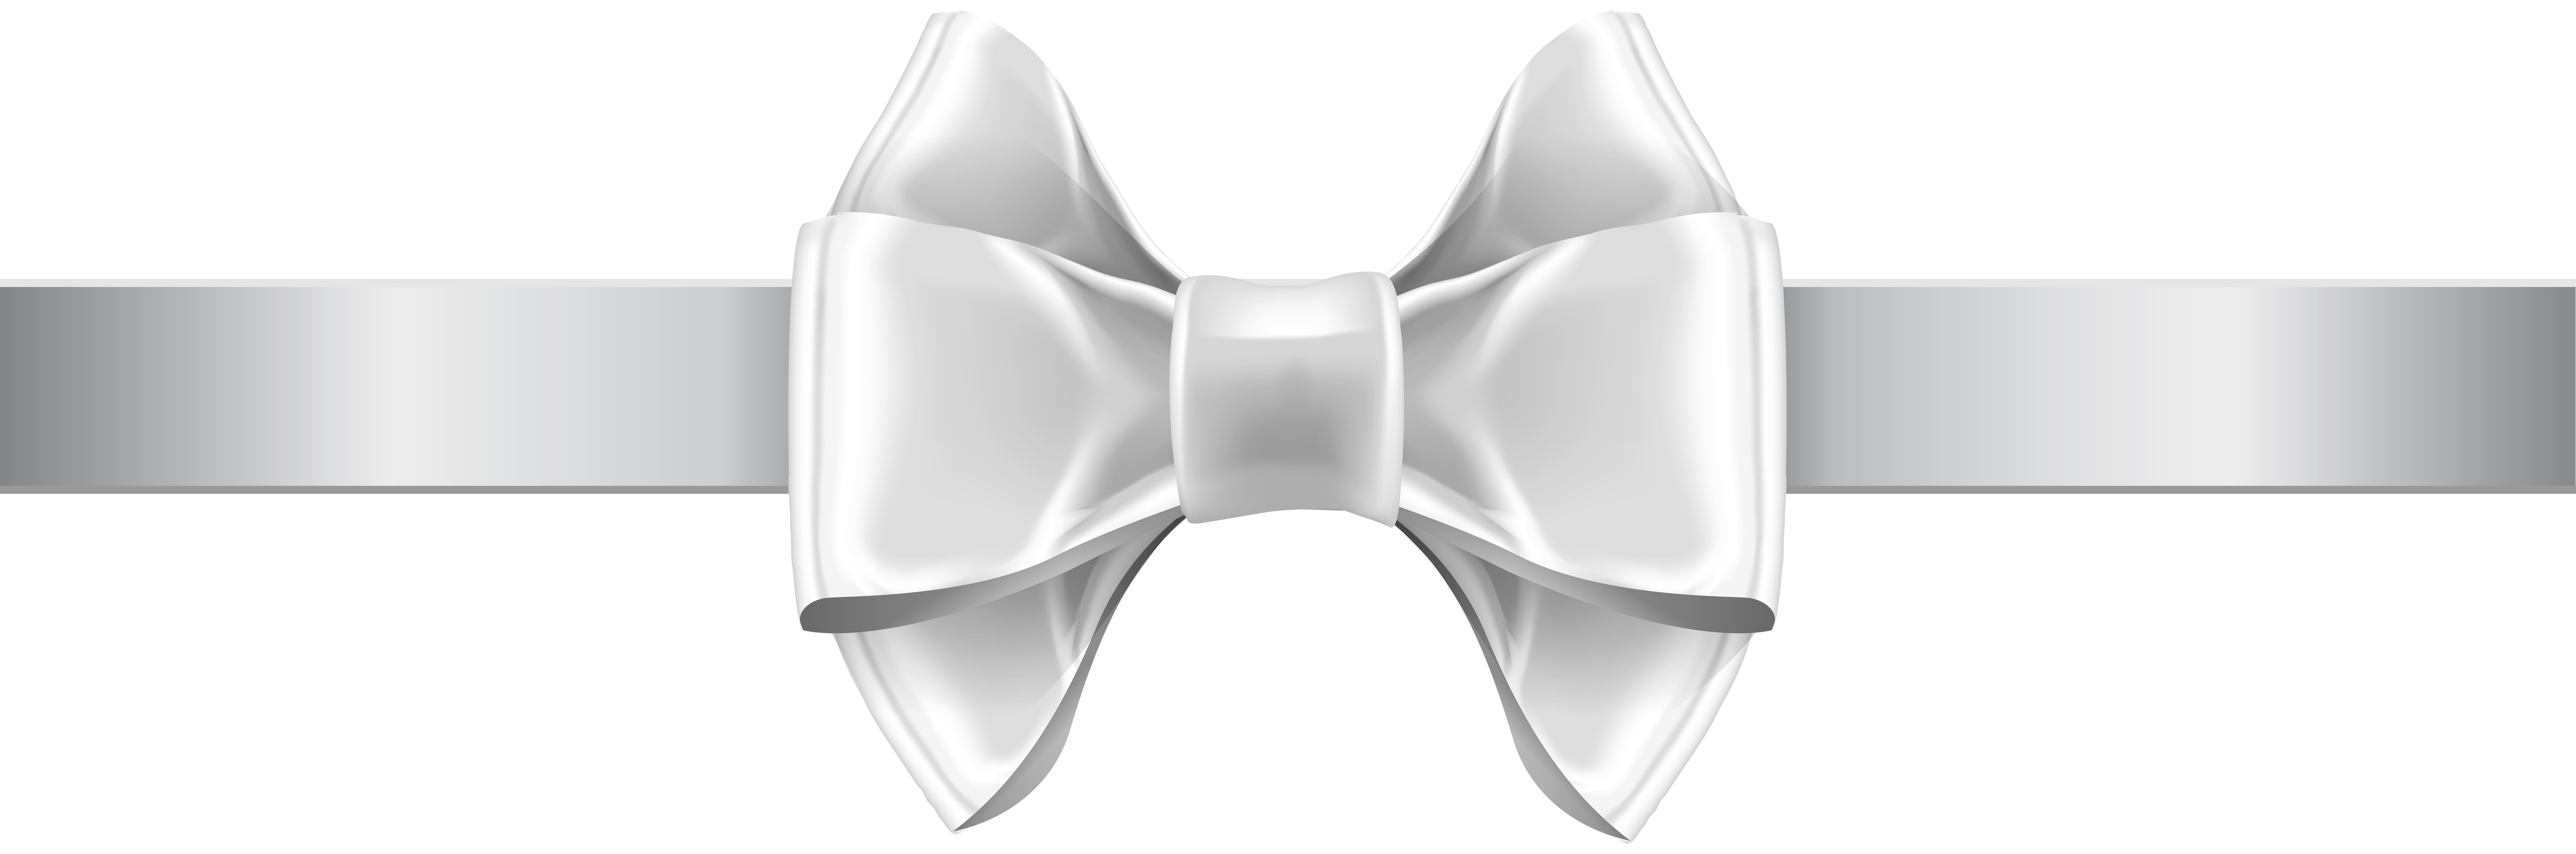 White Bow PNG Clip Art Image.